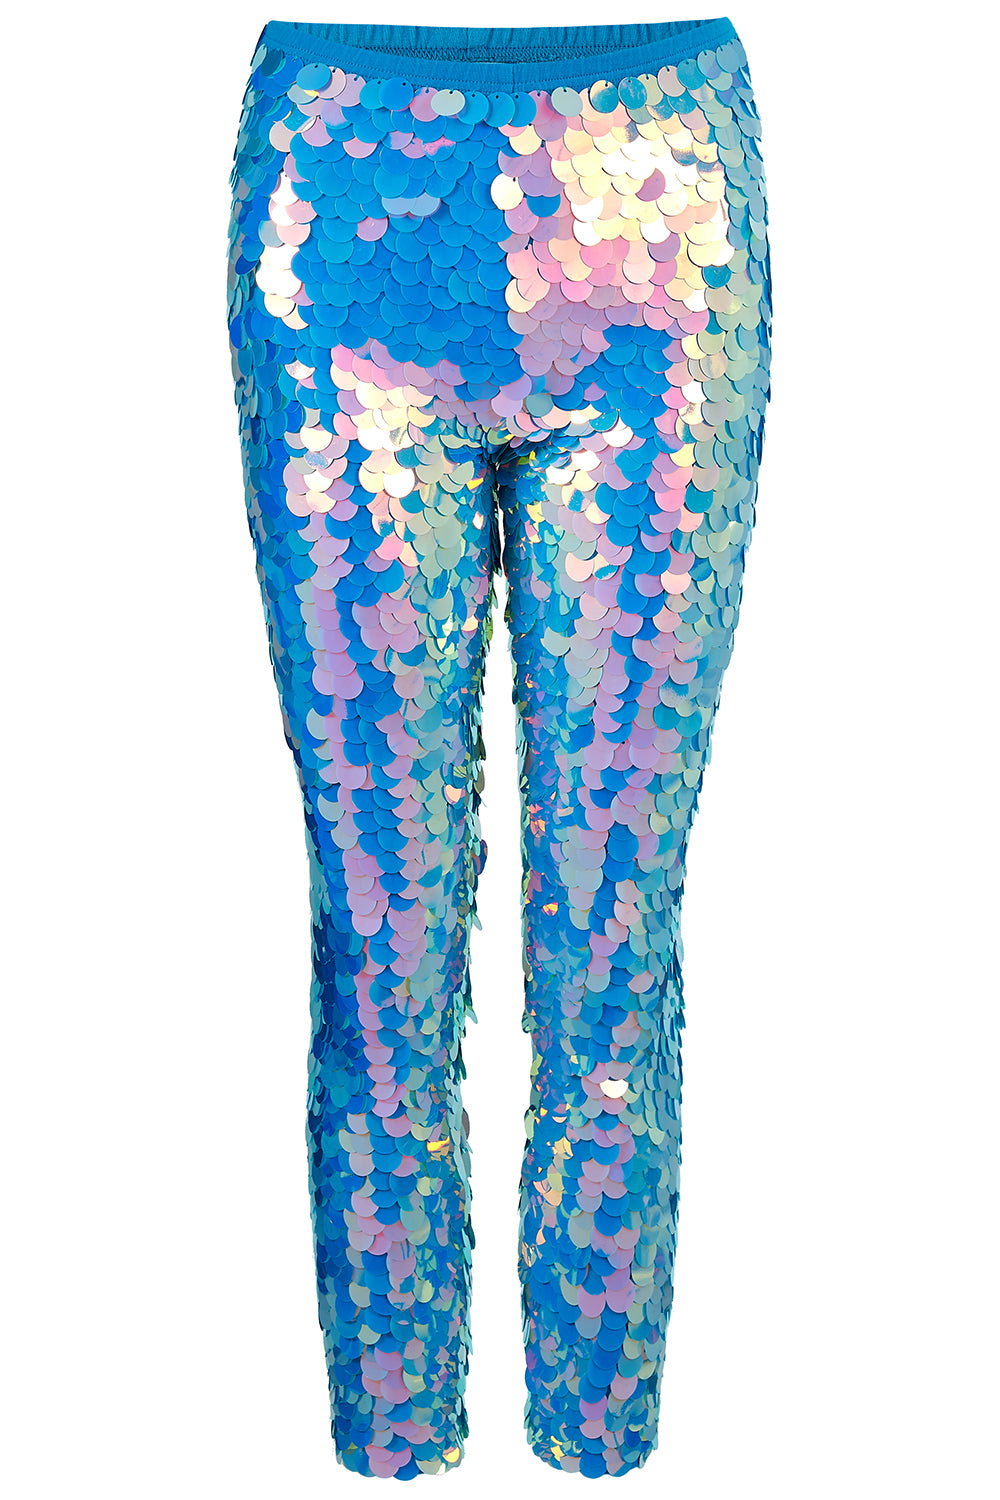 INDUS SEQUIN LEGGINGS - MOONRISE